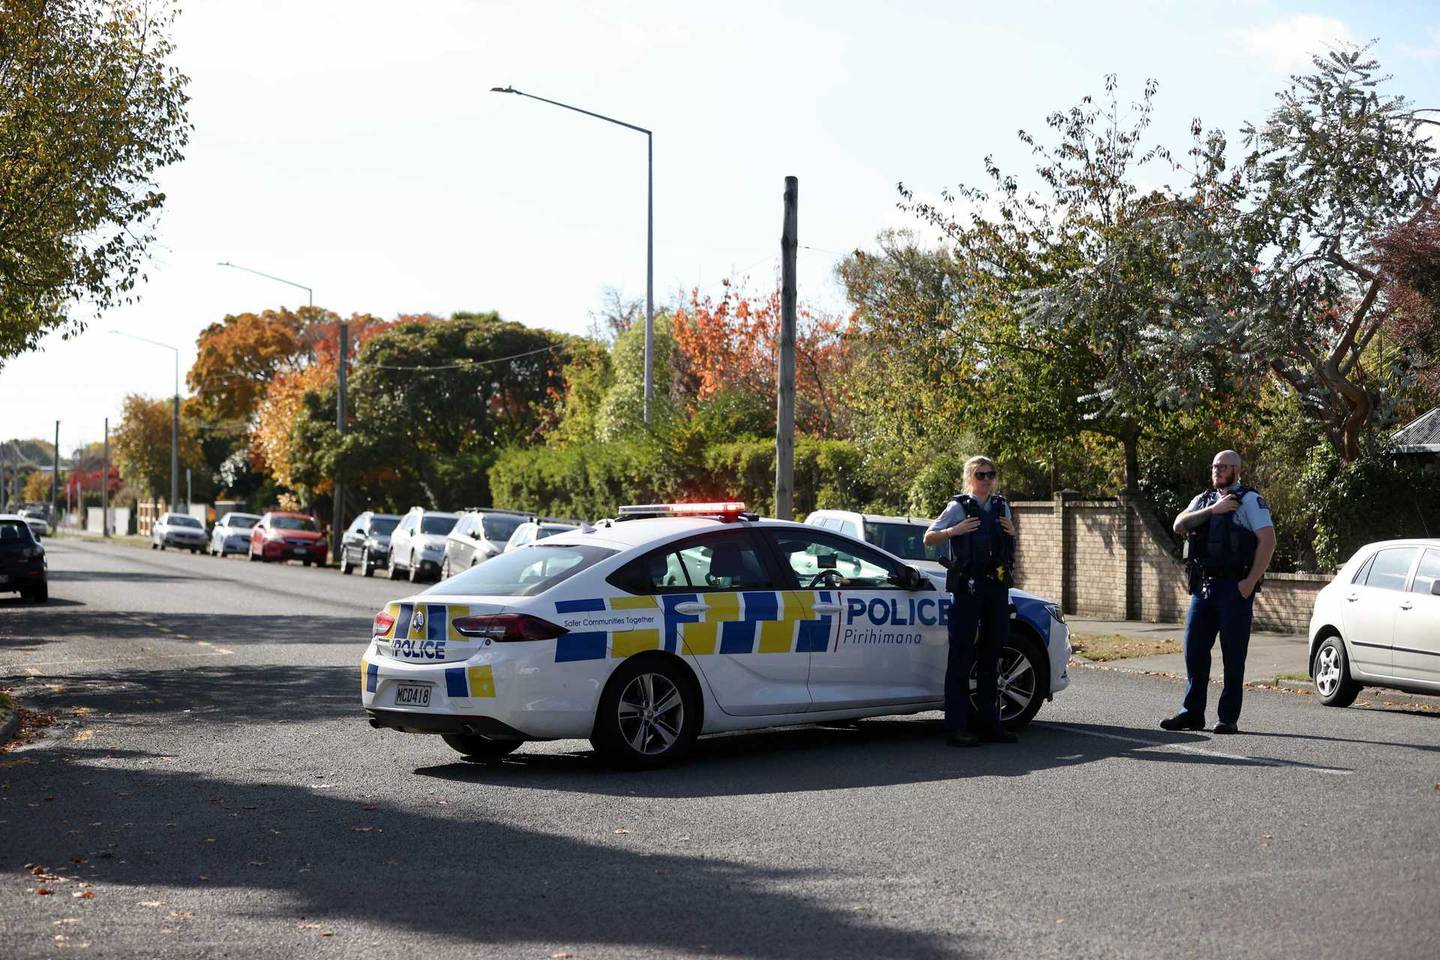 Police and emergency services at the scene of the incident. Photo: George Heard